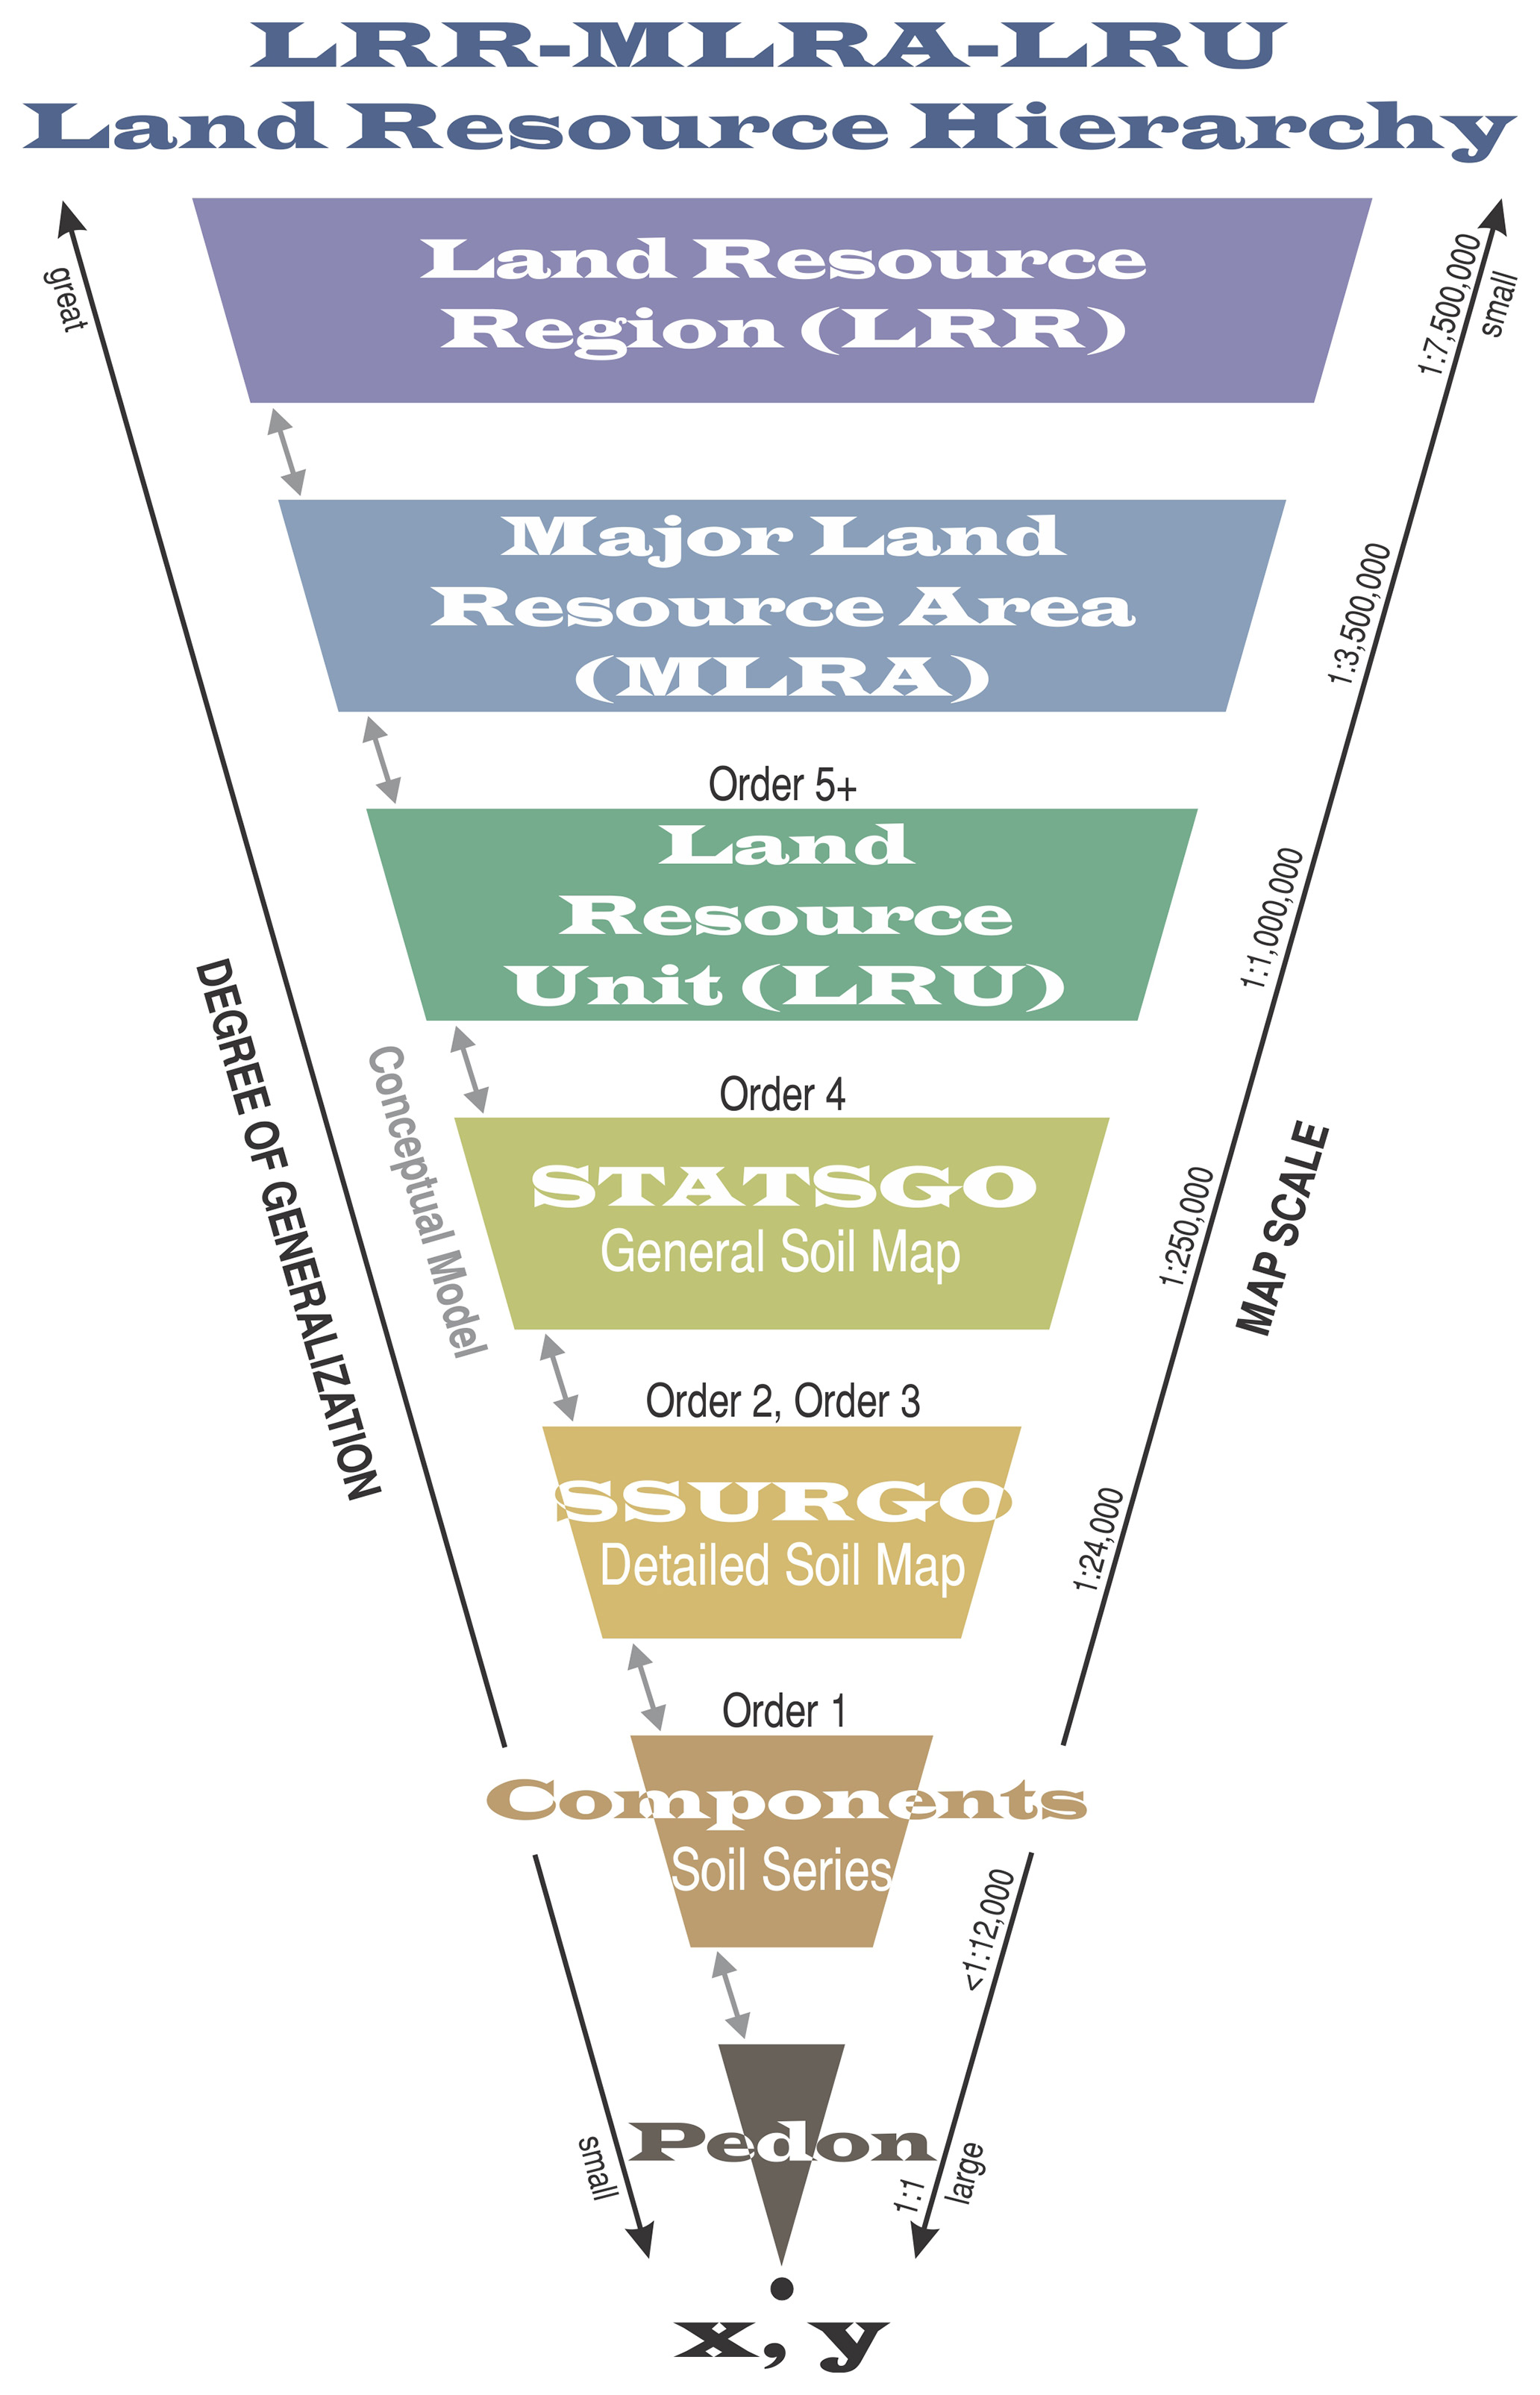 Land Resource Hierarchy reverse pyramid.